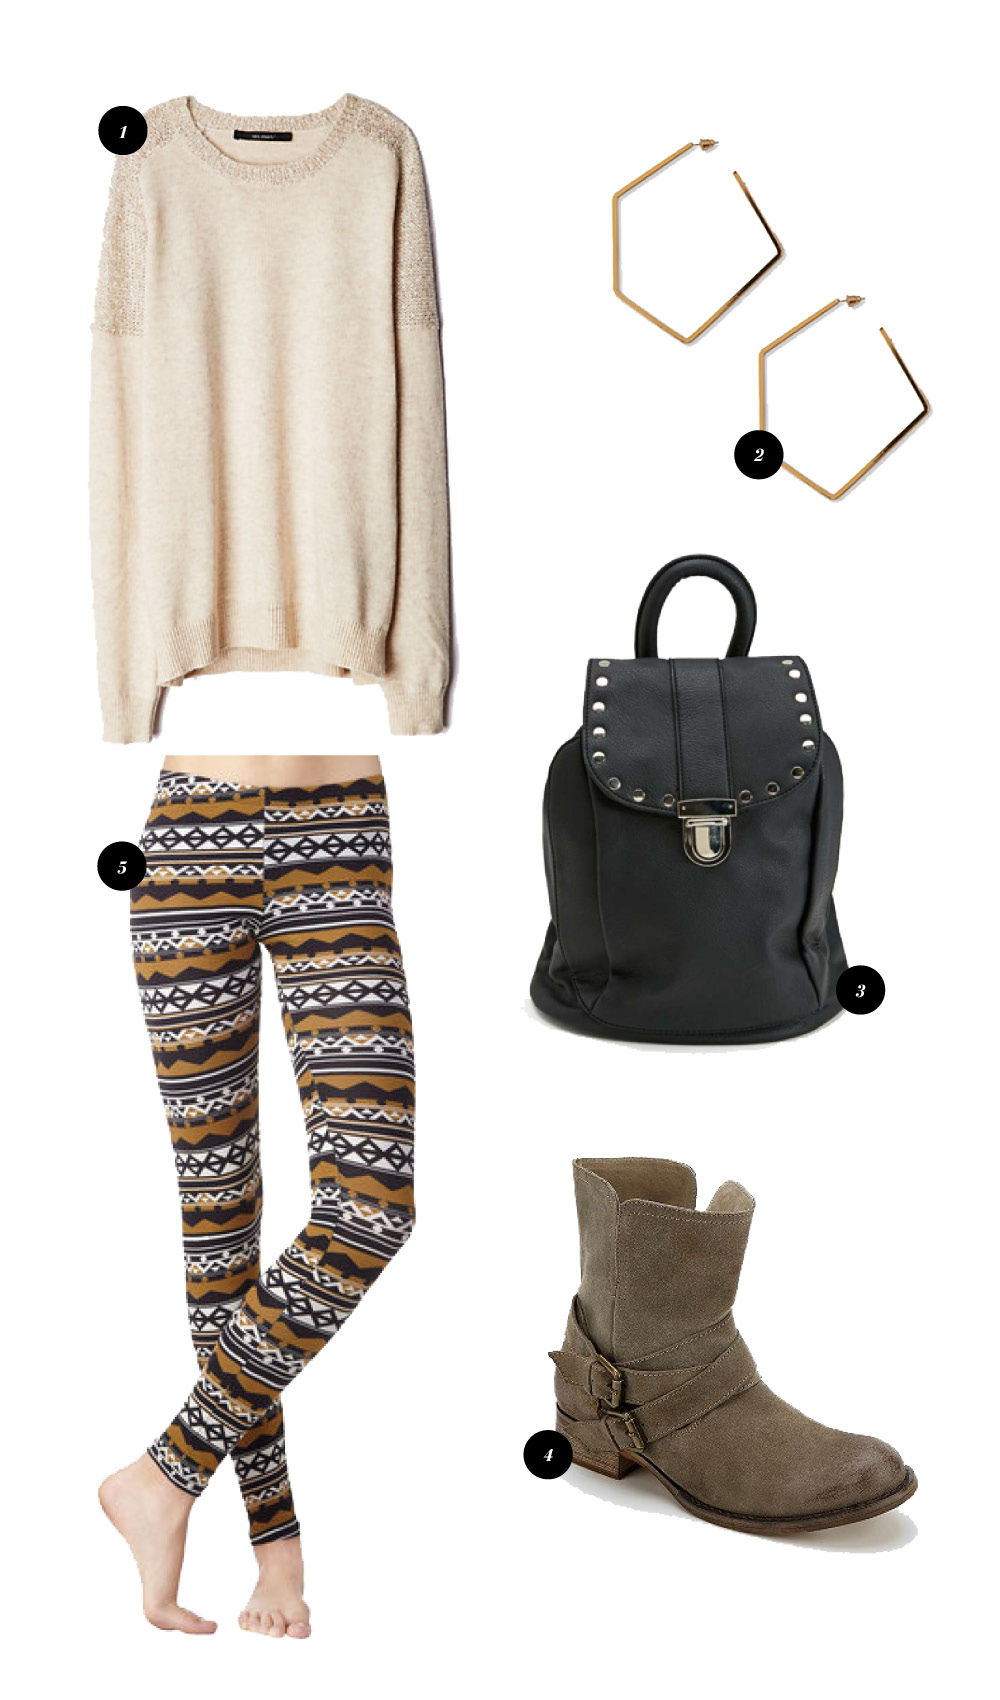 1. Sequin Dusted Sweater from Anthropologie // 2. Pentagon Hoops from Forever 21 // 3. Mini Backpack from Nasty Gal // 4. Biker Boot from Urban Outfitters // 5. Alpine Leggings from Mod Cloth